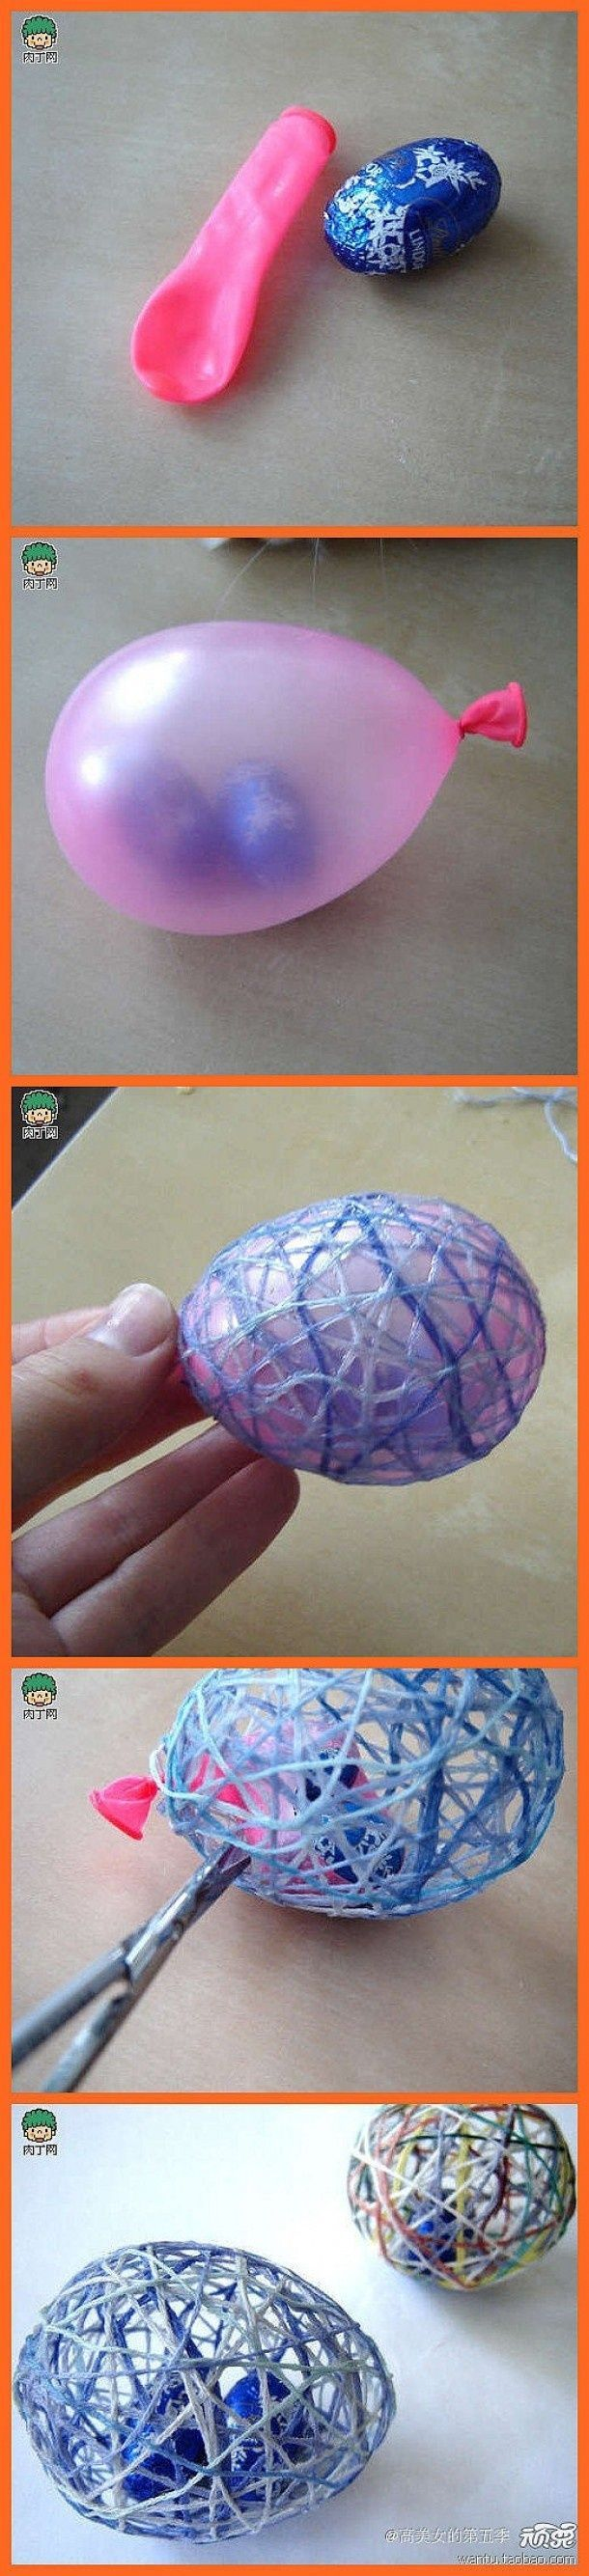 Fill a balloon with a treat and make an egg with yarn and modpodge. Such a great idea for the littles in your life! This would also be a fun craft for Spring Break!  Yarn Easter Egg Craft #eastereggs